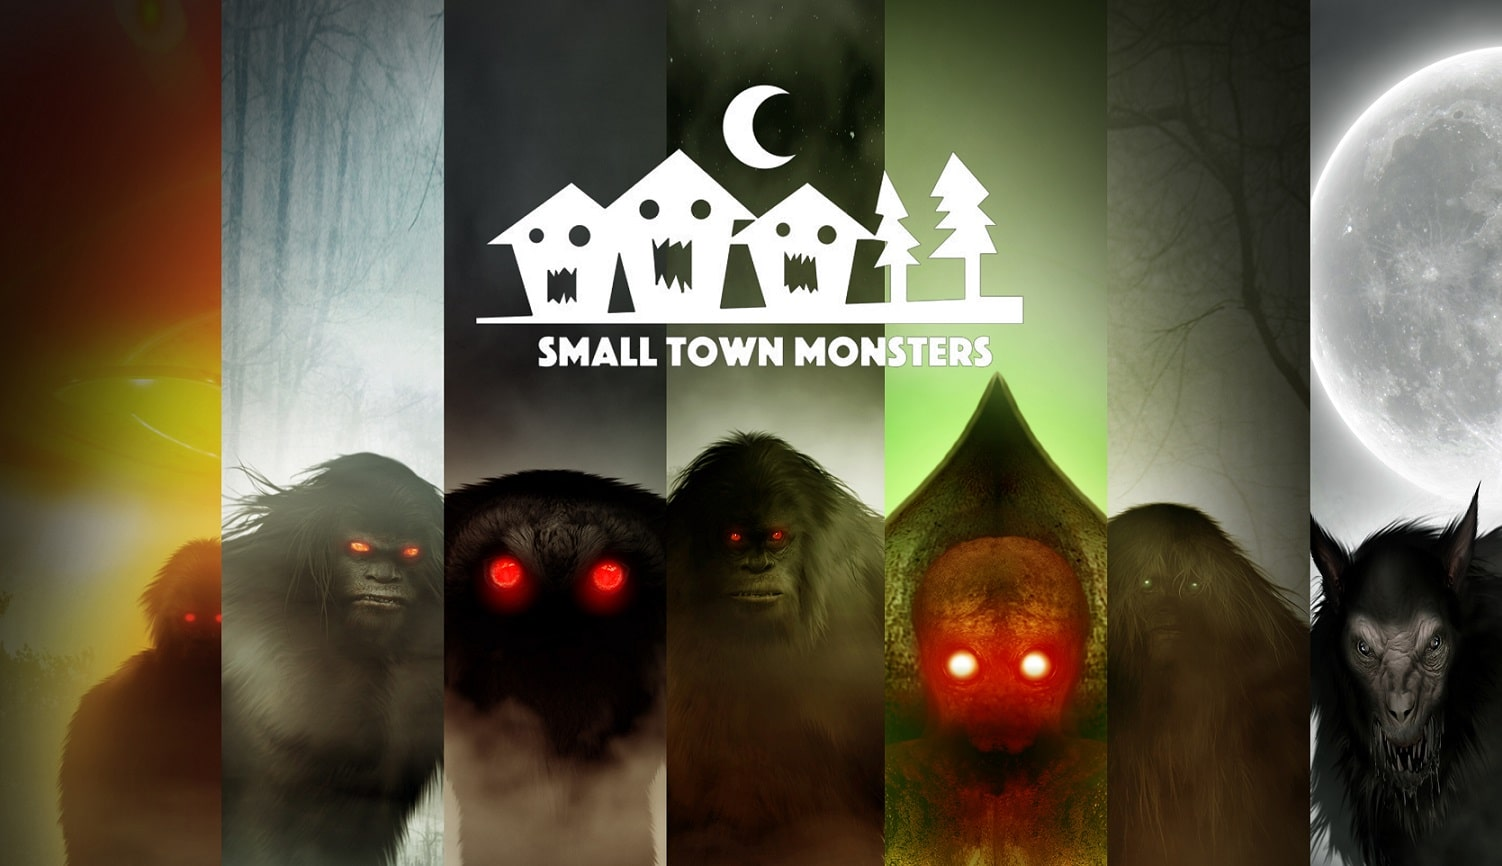 Kickstarter Alert: 'On the Trail of ... Bigfoot' with Seth Breedlove and Small Town Monsters